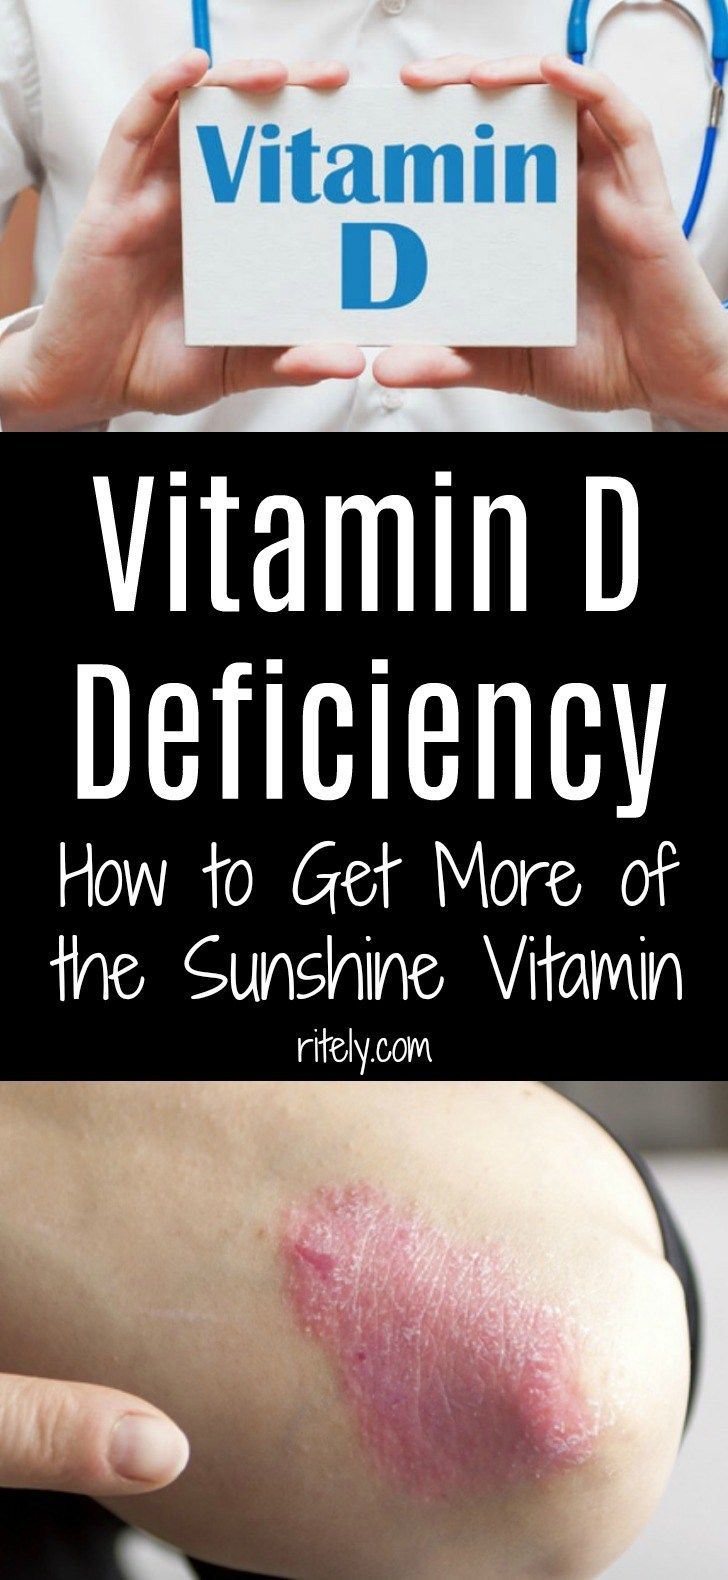 Vitamin 'D' Deficiency How To Get More Of The Sunshine Vitamin!!!!  #wieghtloss  #fitness